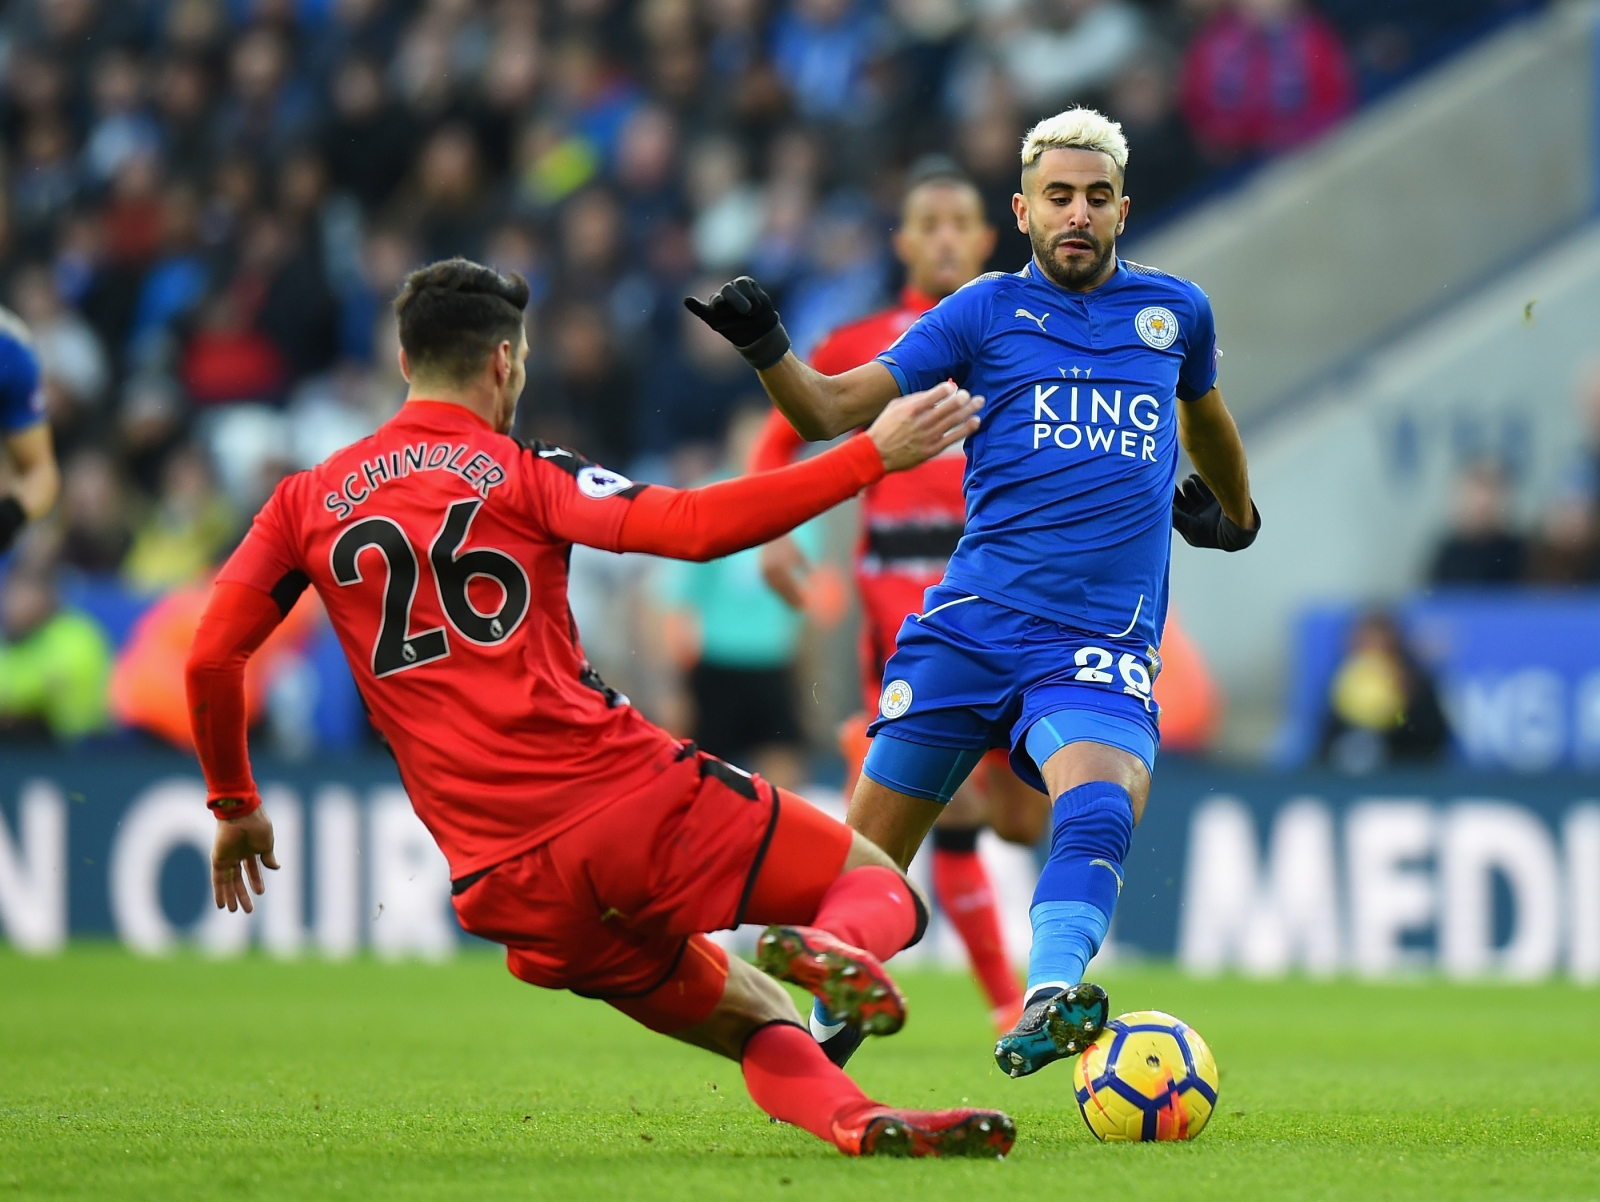 Riyad Mahrez to Liverpool: Transfer talks begin but player wants Arsenal move